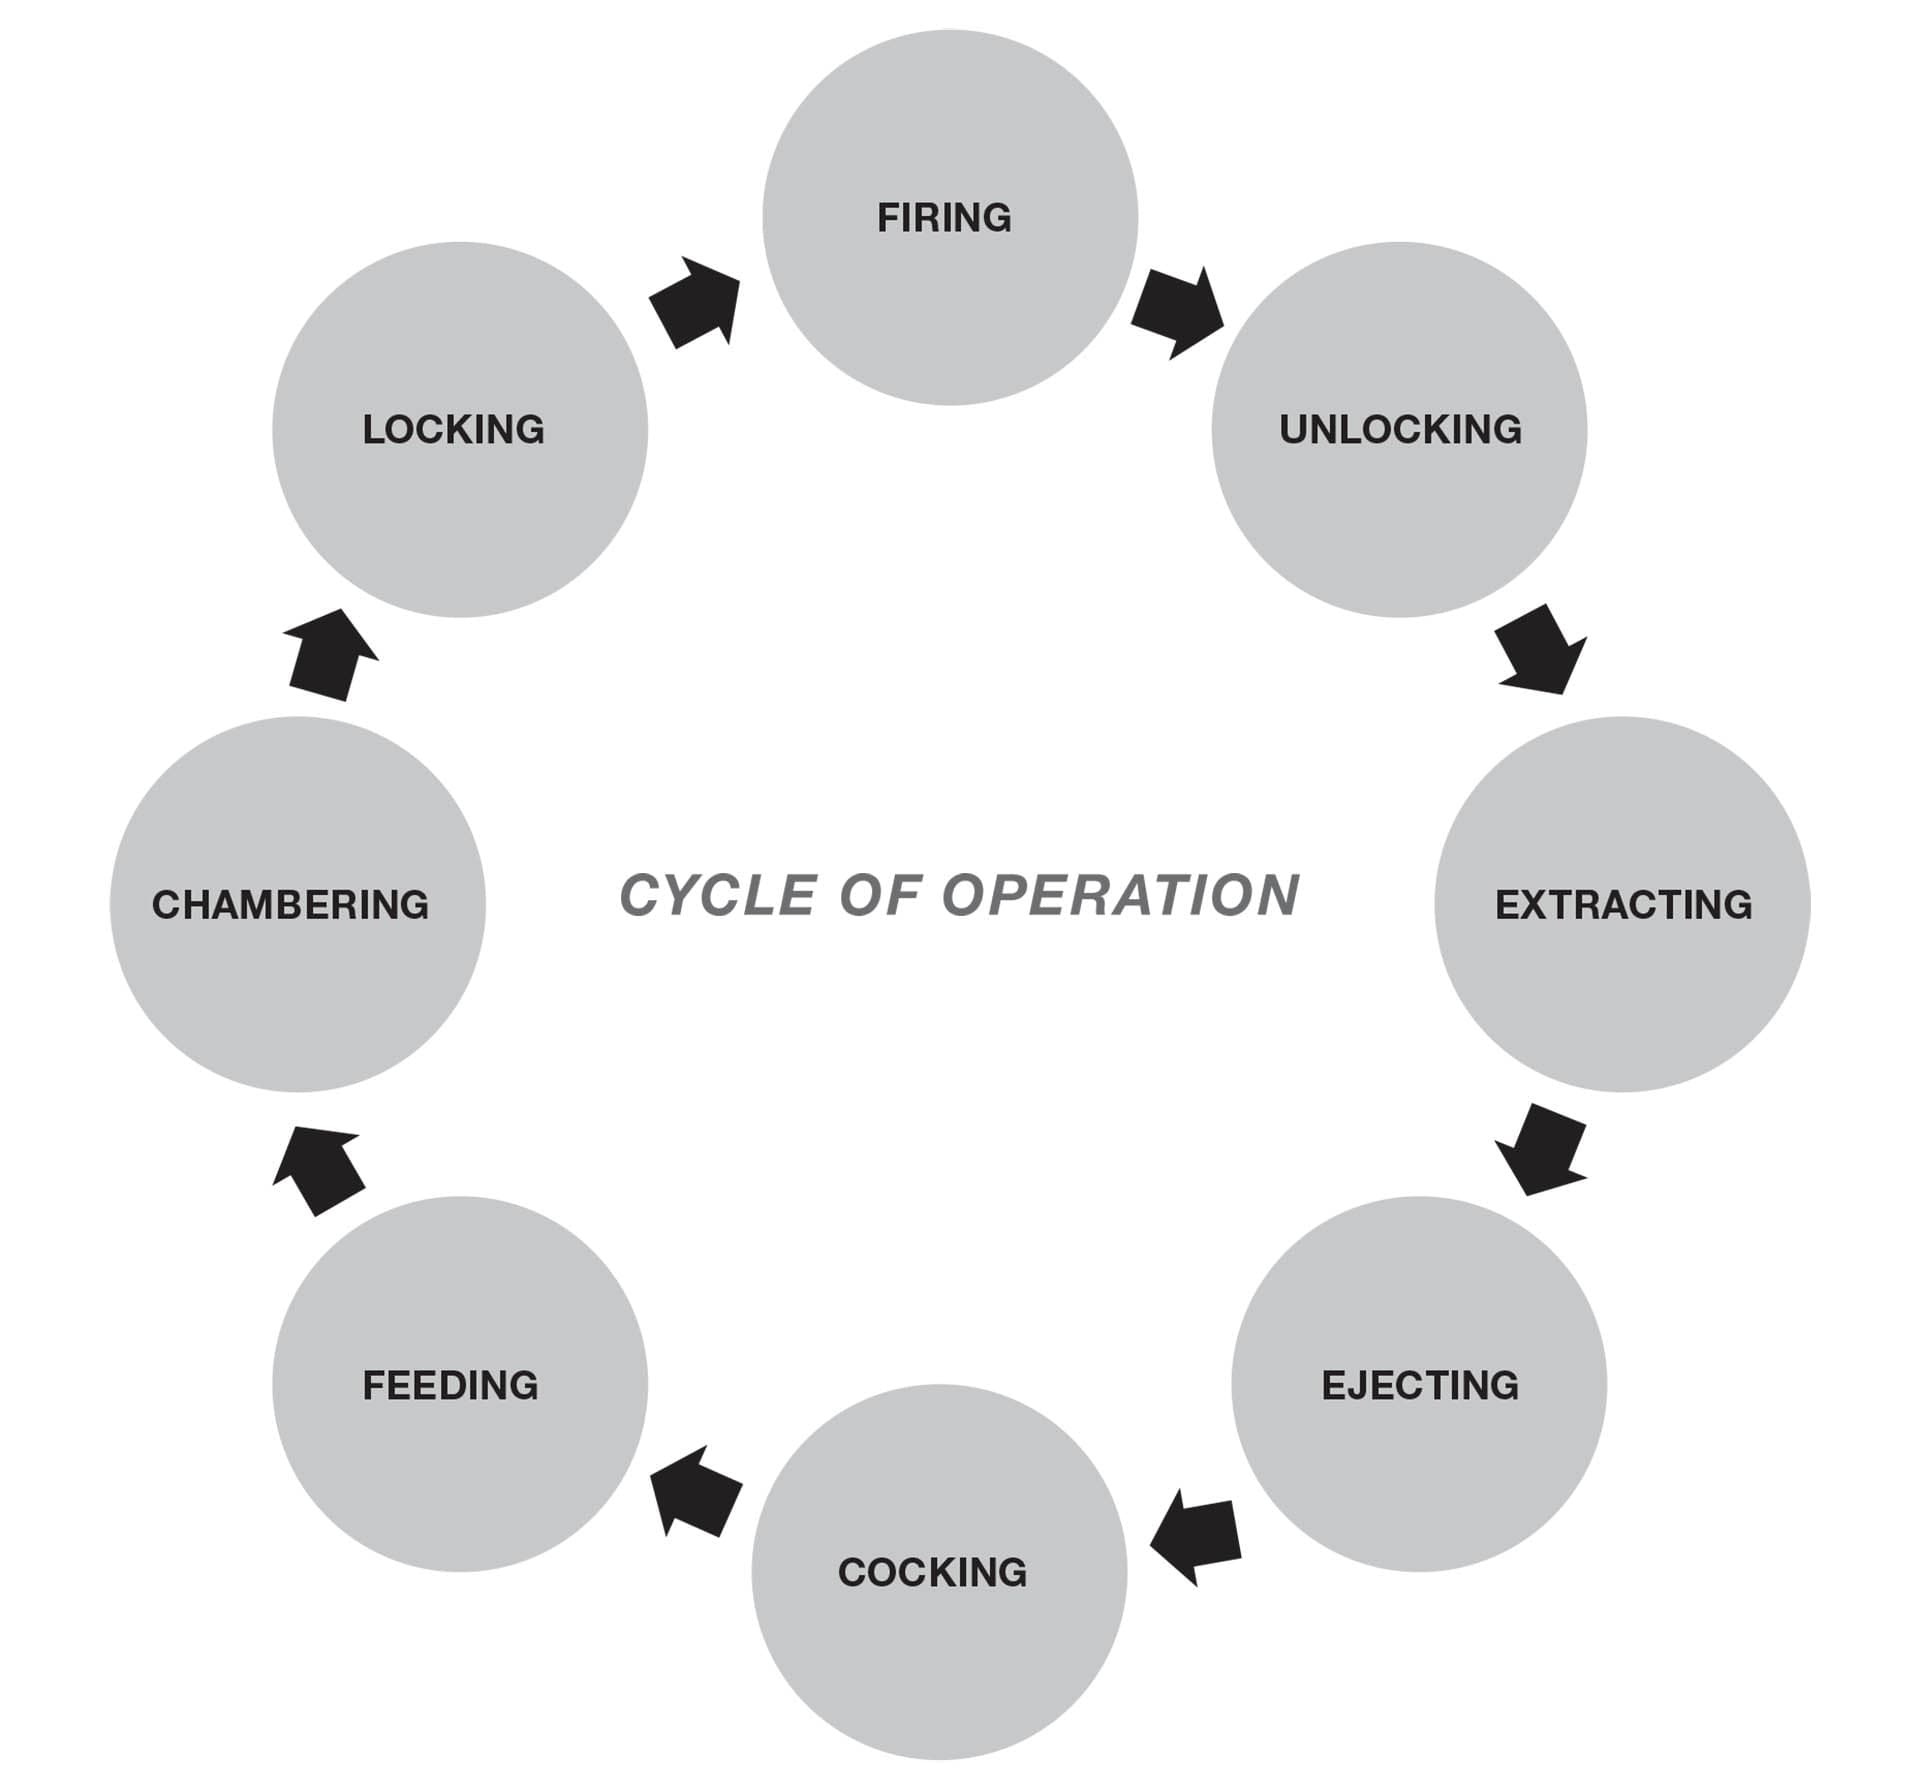 Cycle of Operation Diagram